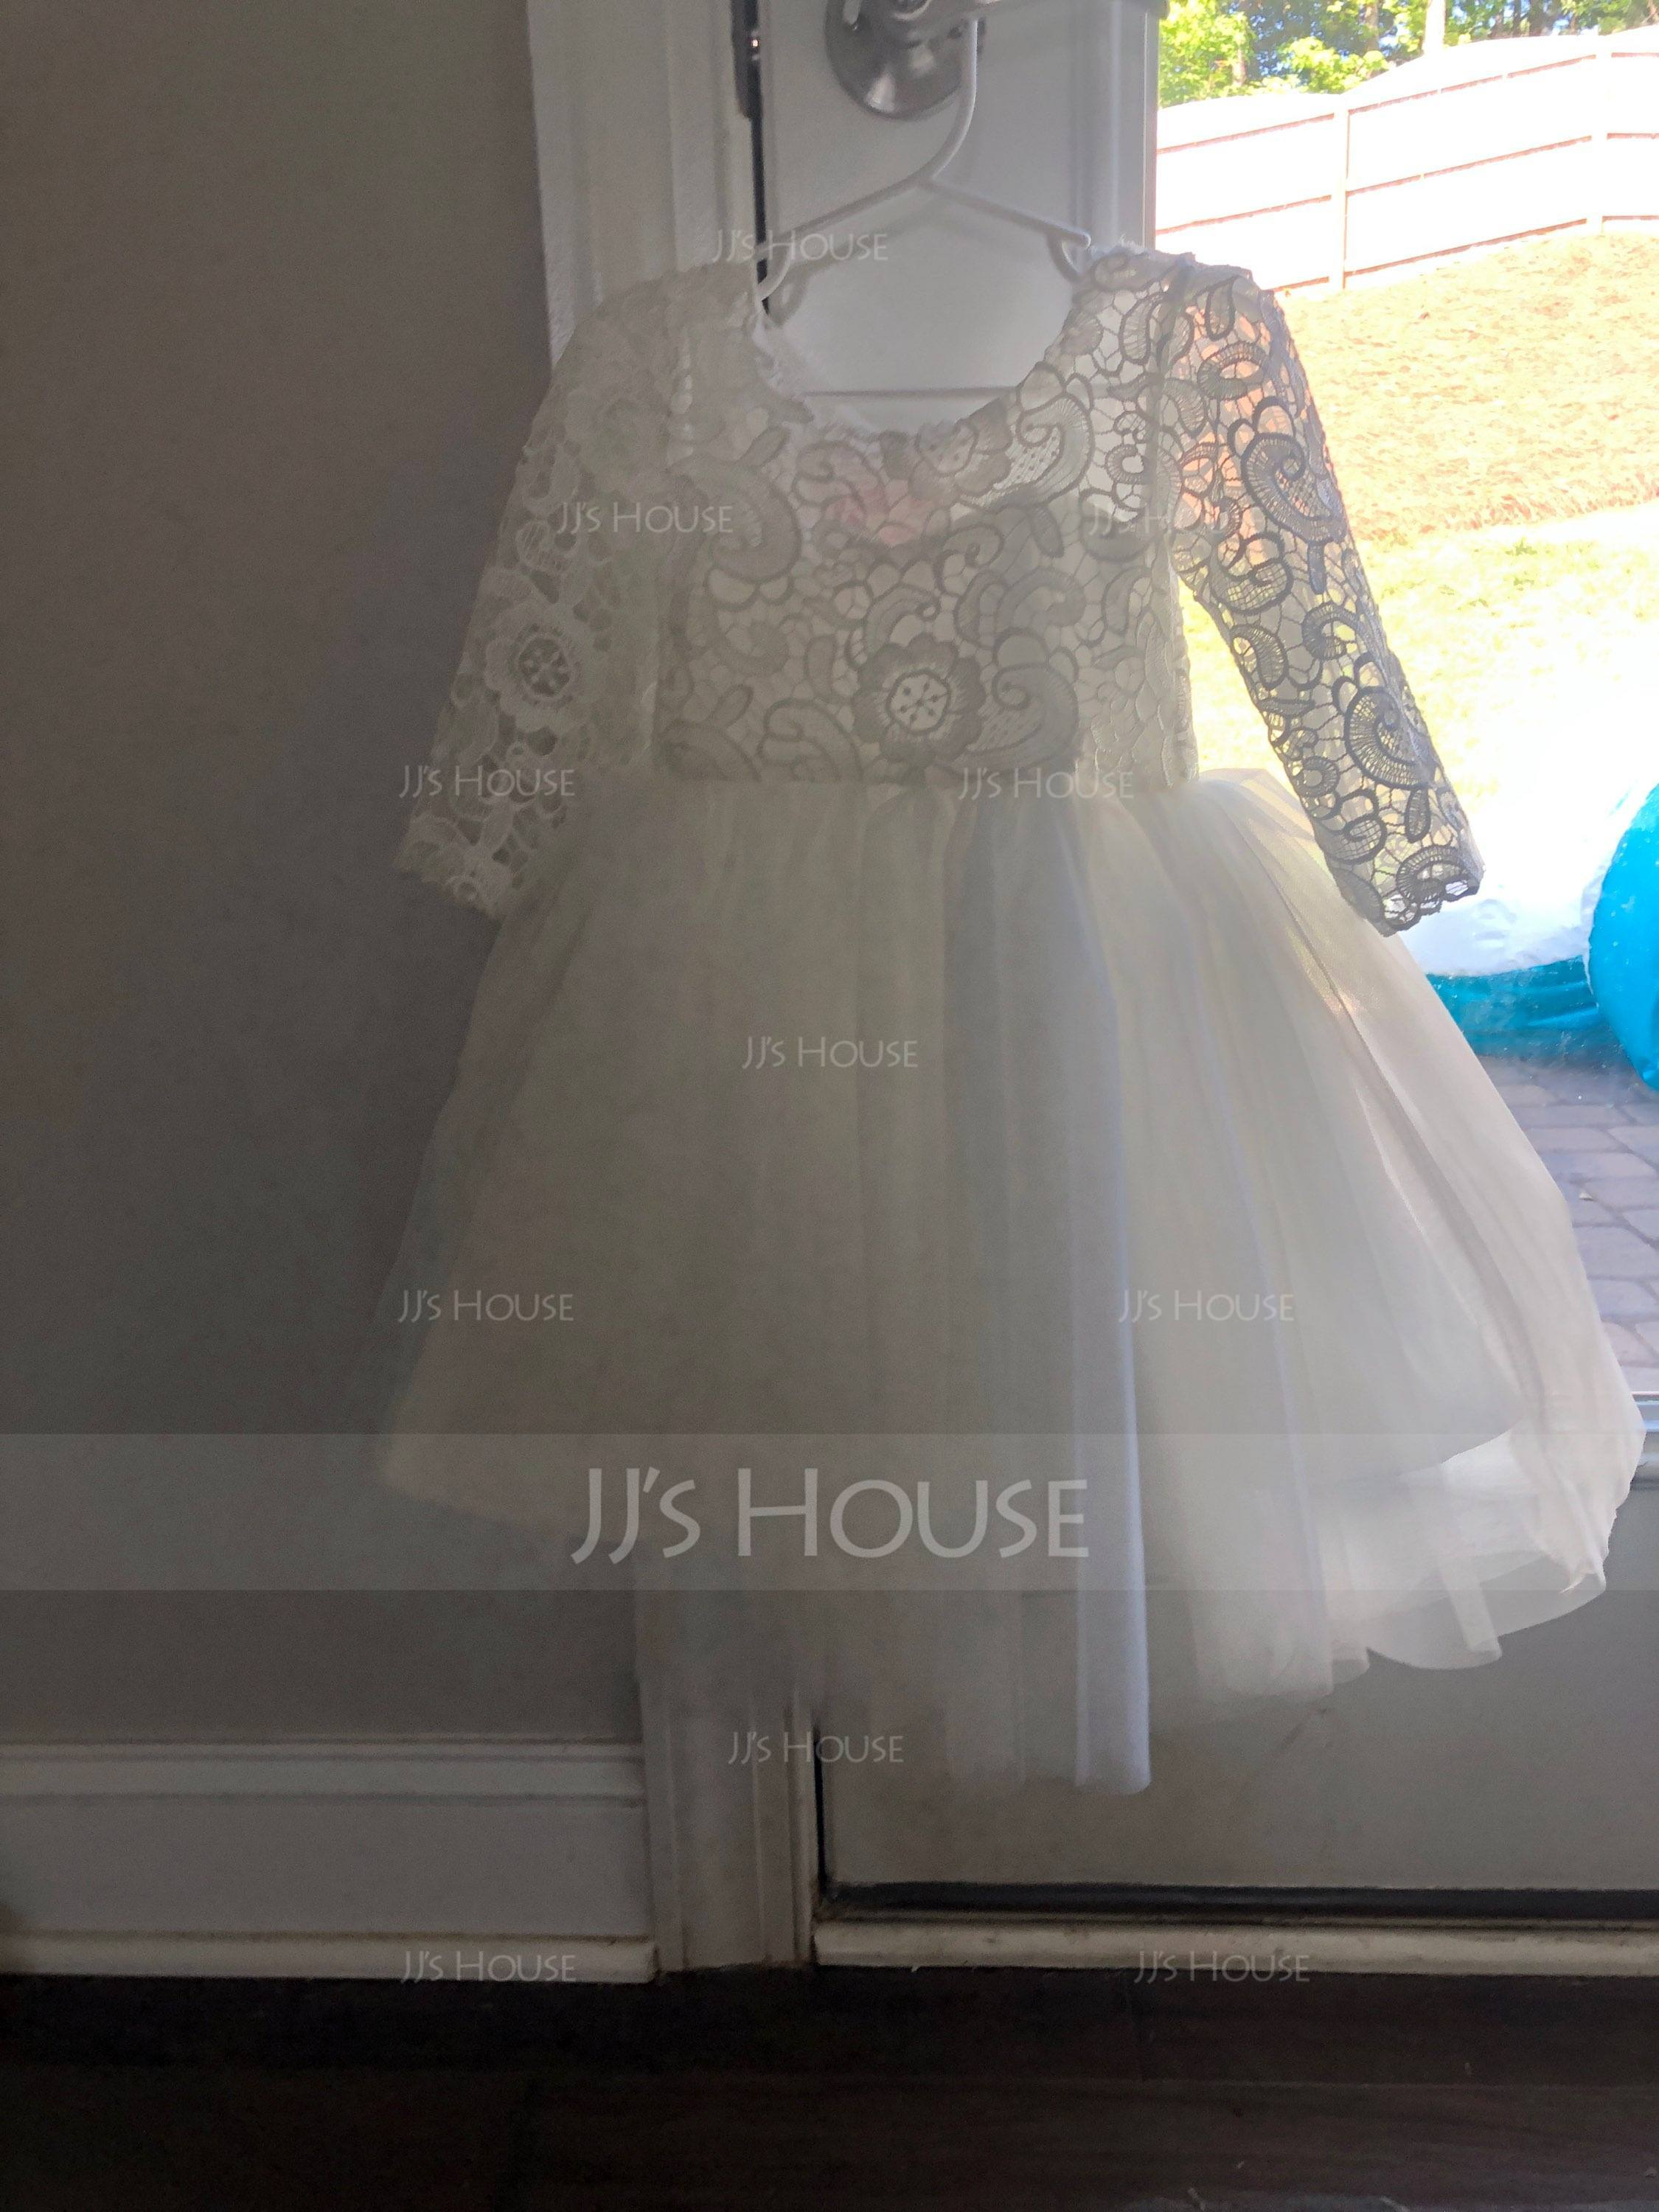 A-Line/Princess Knee-length Flower Girl Dress - Satin/Tulle Long Sleeves Scoop Neck With Lace (010117533)